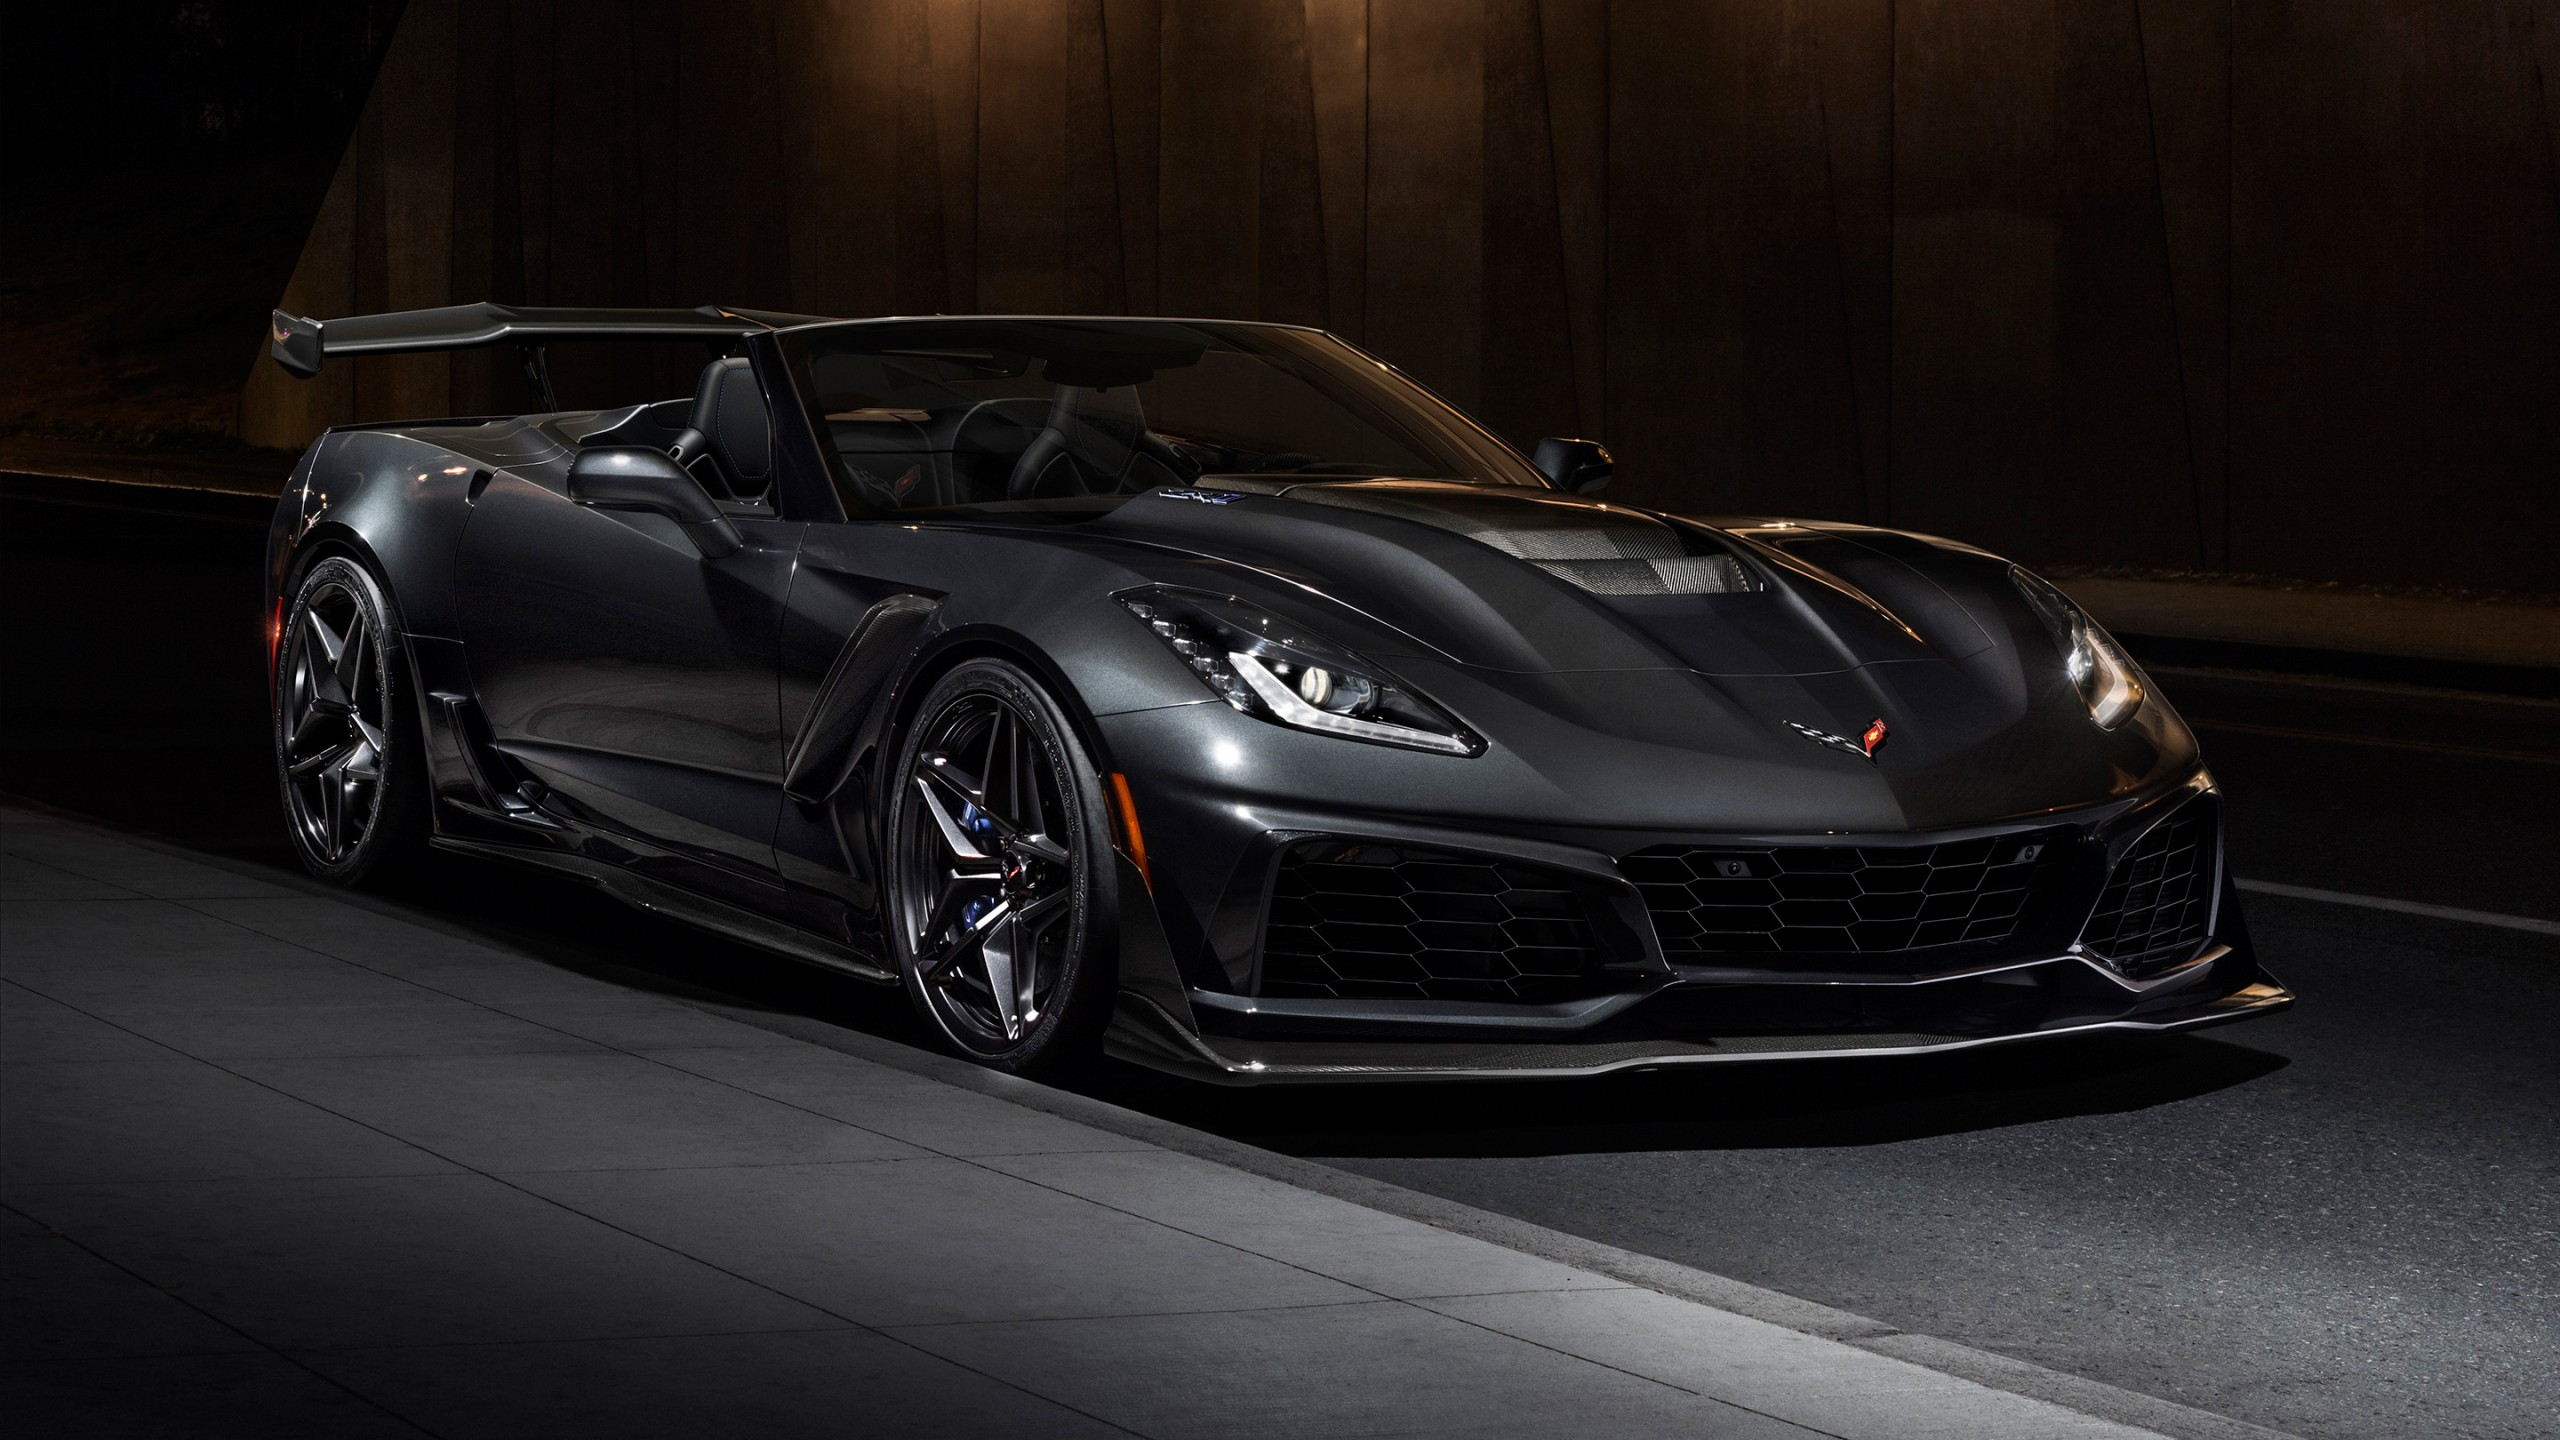 Iphone X Wallpaper Jeep 2019 Chevrolet Corvette Zr1 Convertible Wallpaper Hd Car